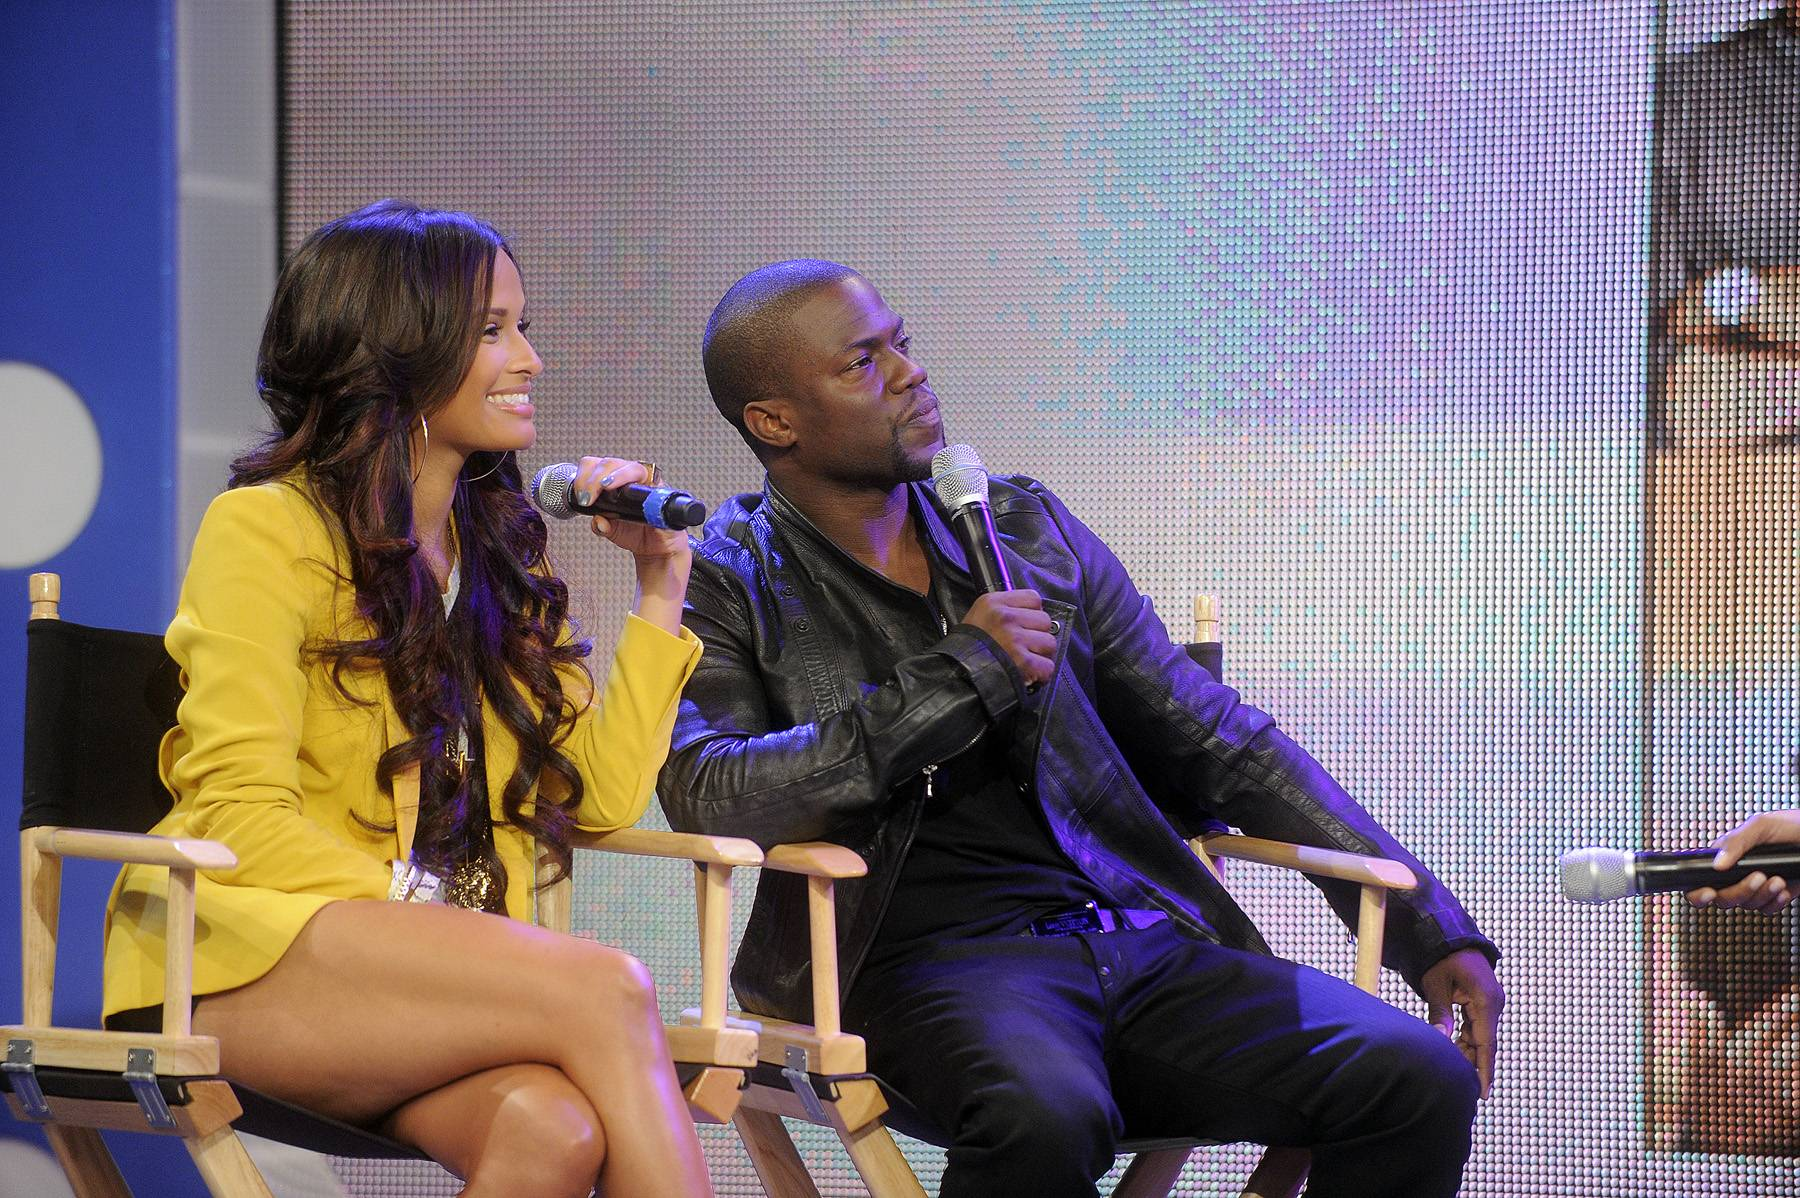 Switching It Up - When Kevin stopped by 106 & Park in April with the Think Like a Man cast, he switched places with one of the film's other stars, Terrence J, who was still a host at the time. He made Terrence sit in his seat and actually interviewed him during one of the segments. (Photo: John Ricard / BET)